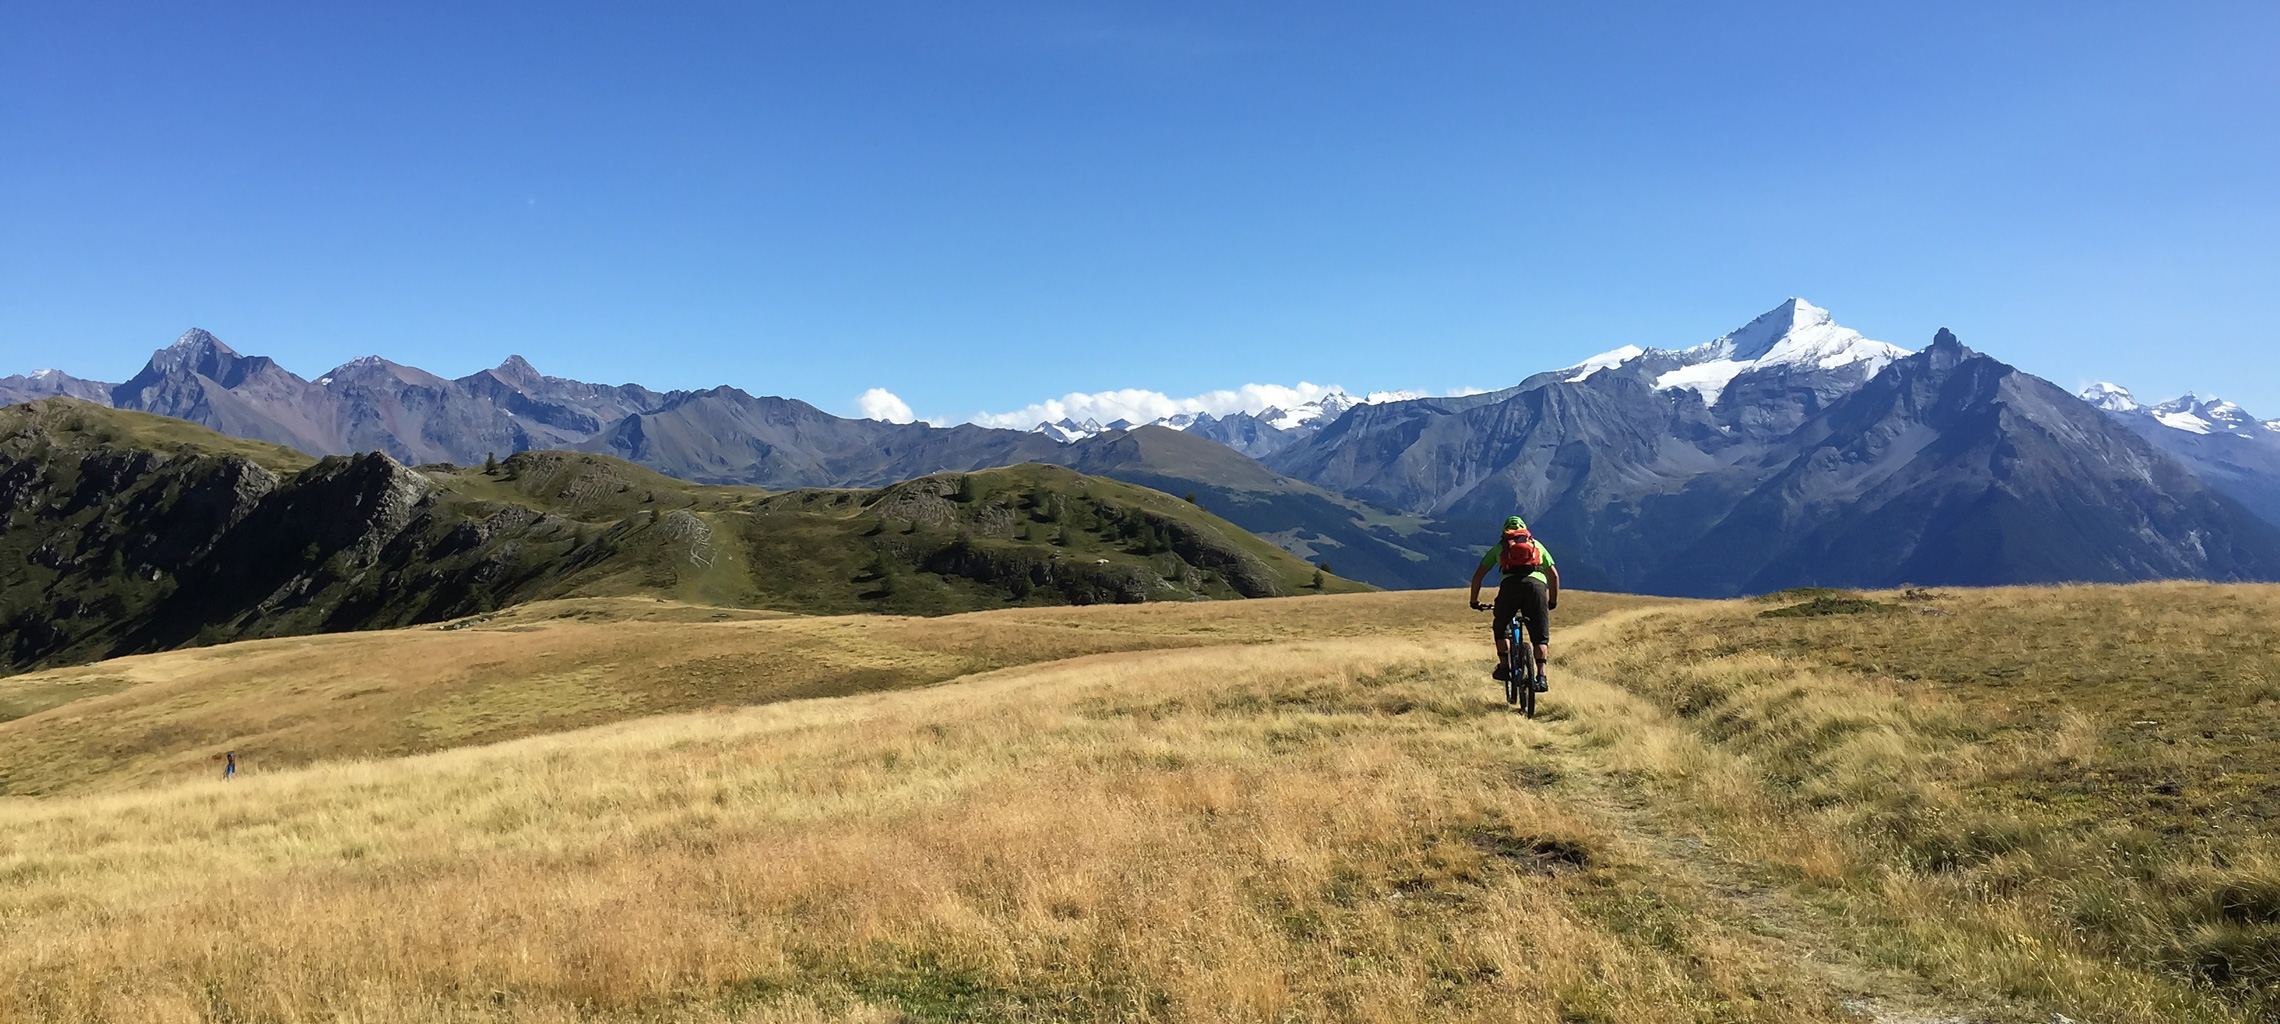 Aosta valley mountain biking